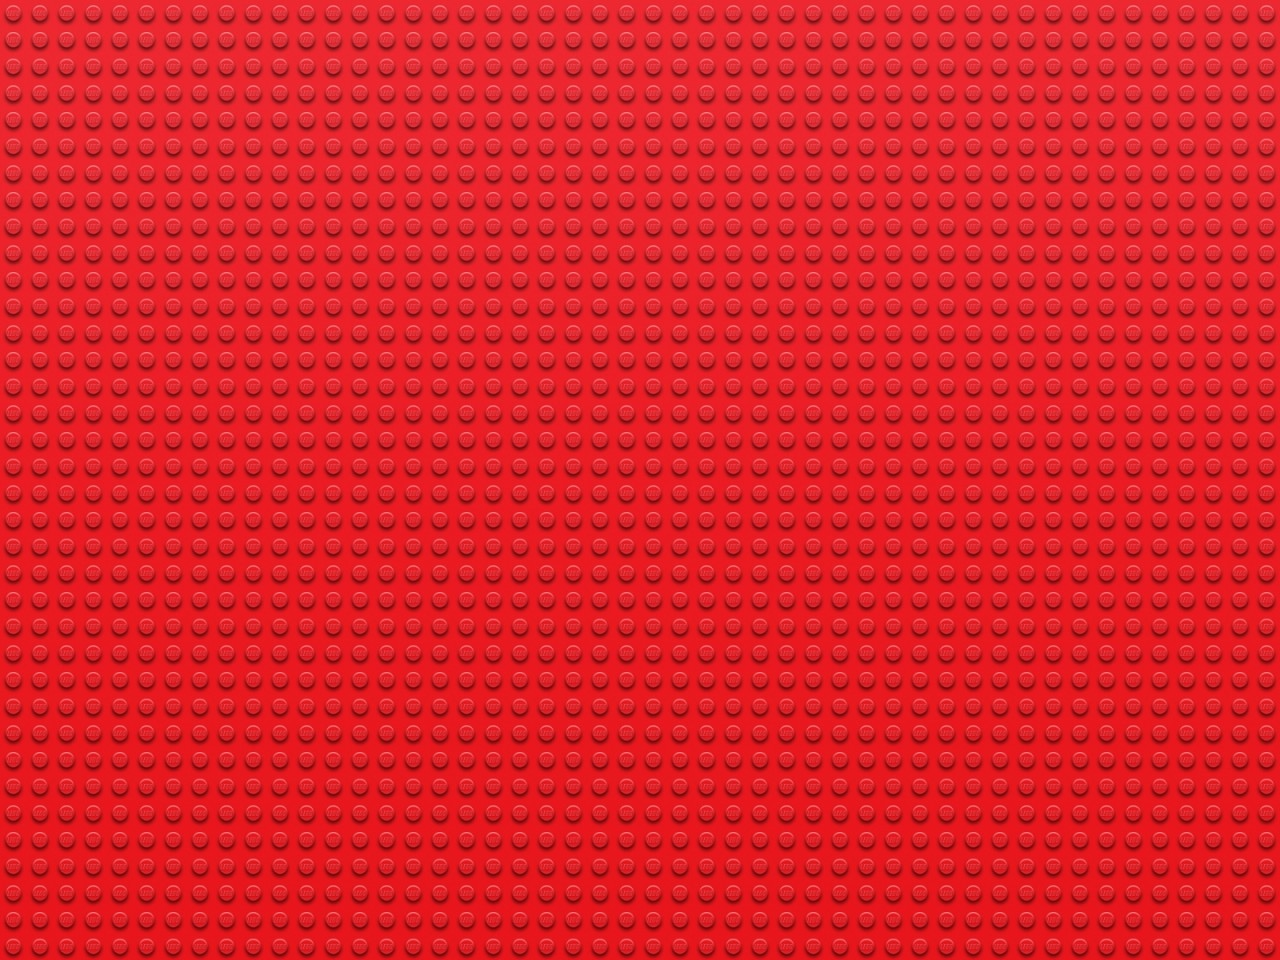 Download Wallpaper High Resolution Red - Red-Studs-Lego-Wallpaper-1280x960  Graphic_436878.jpg